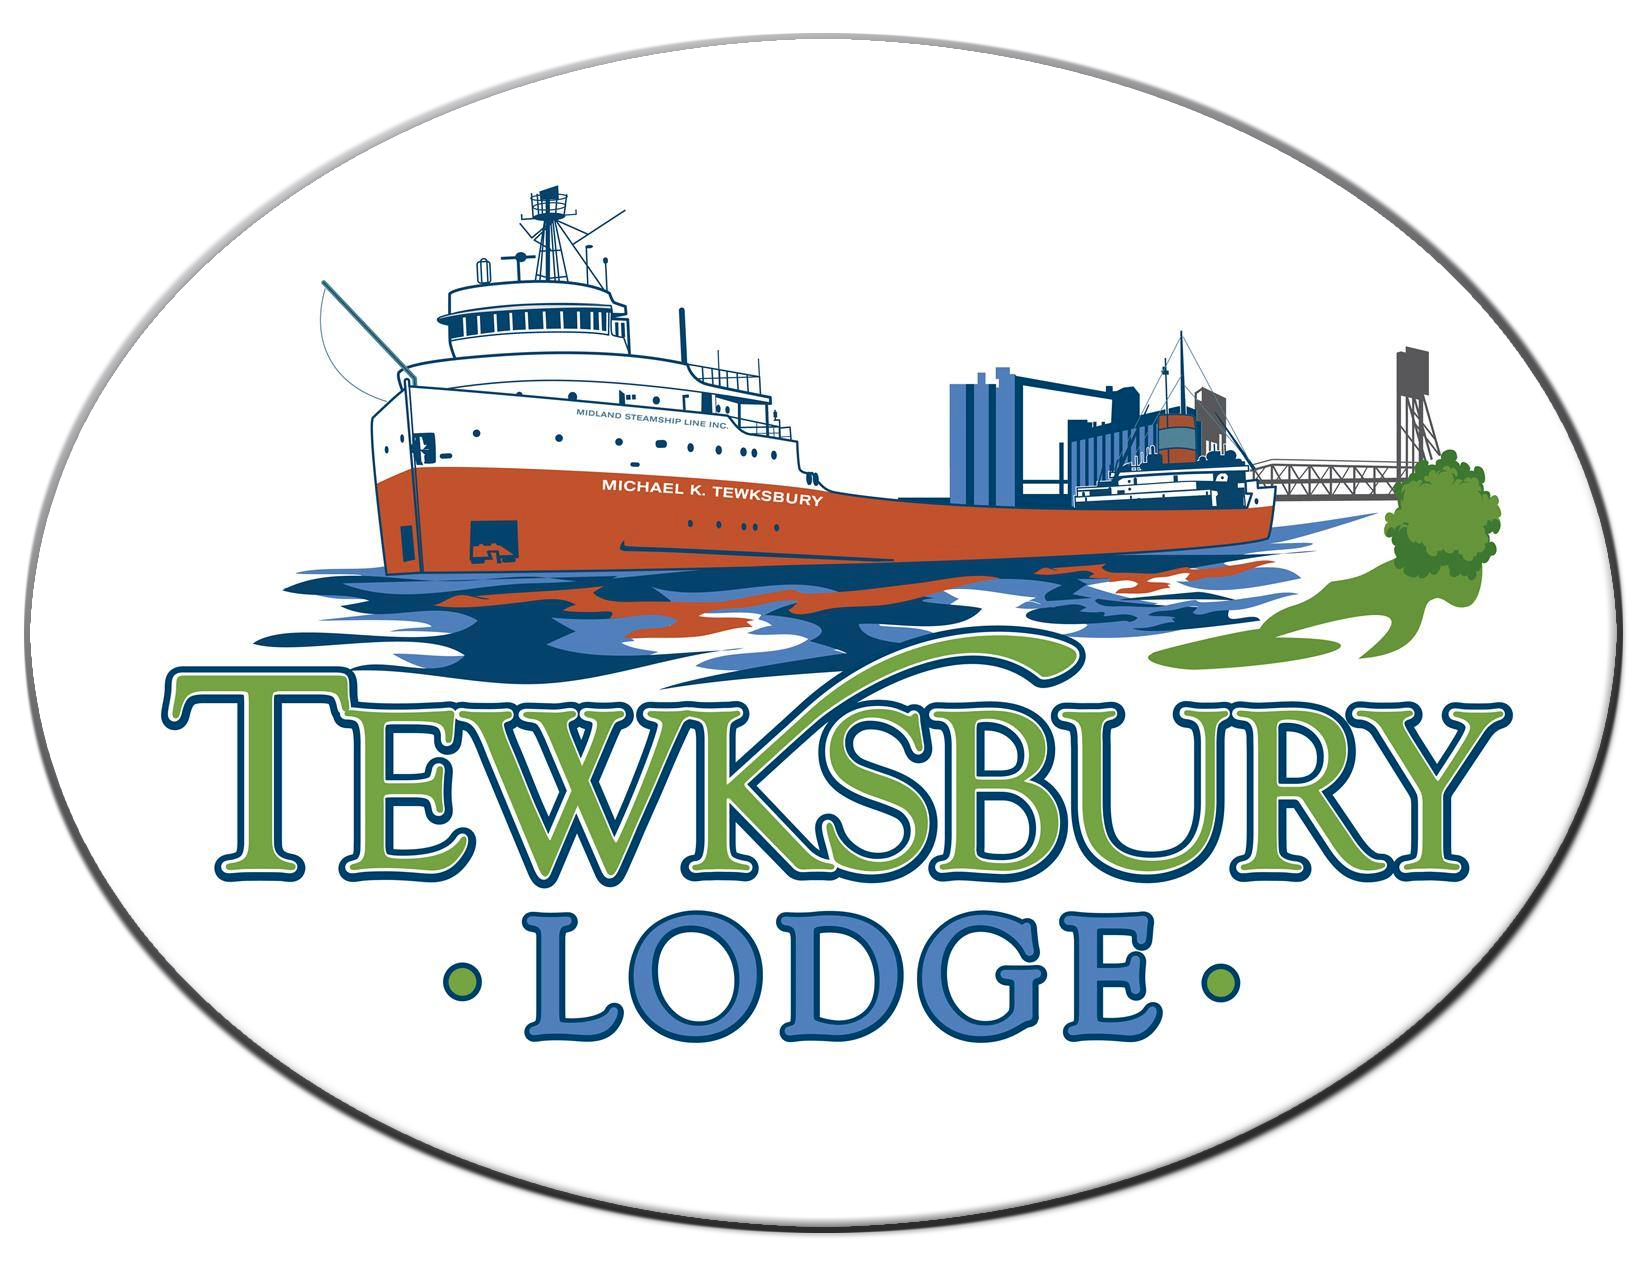 The Tewksbury Lodge